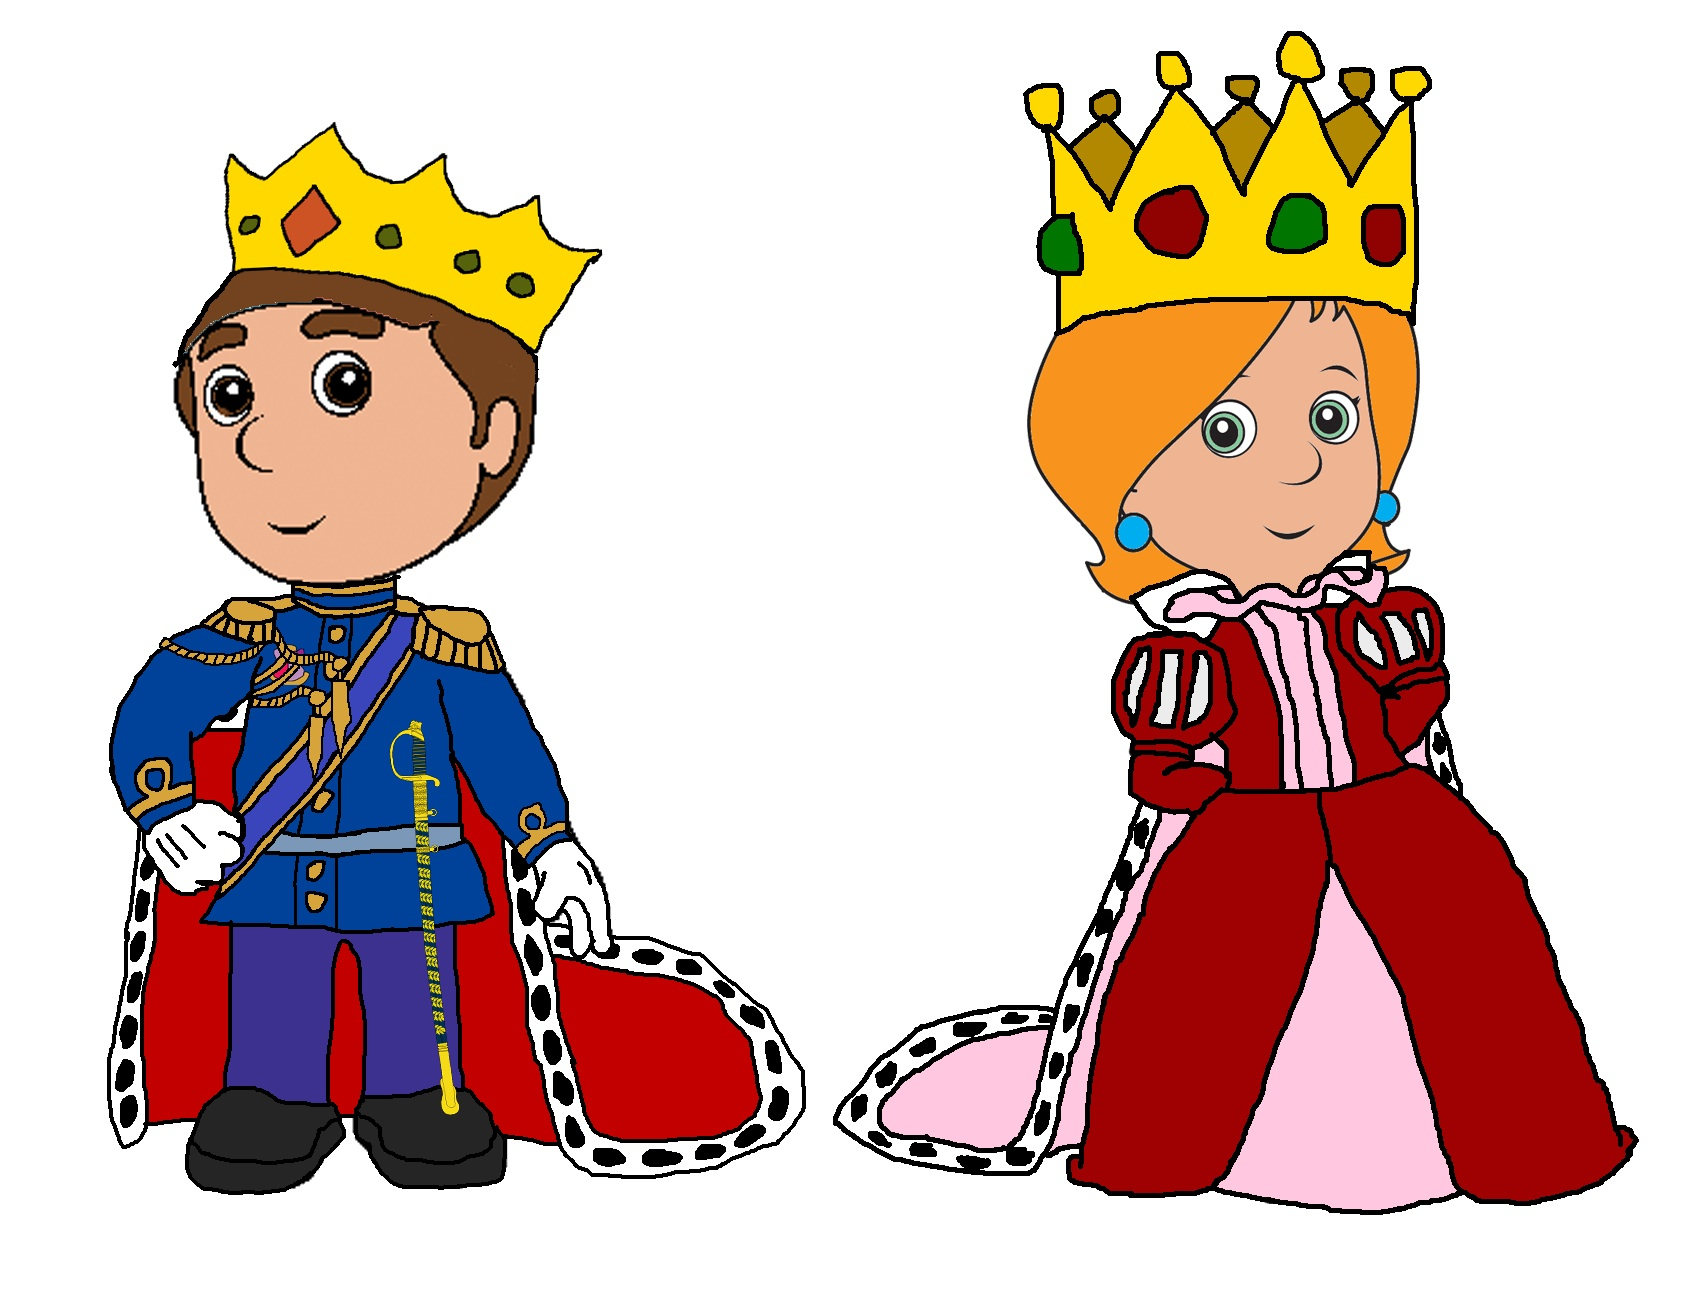 king and queen clip art clipart panda free clipart images rh clipartpanda com black king and queen clipart black king and queen clipart